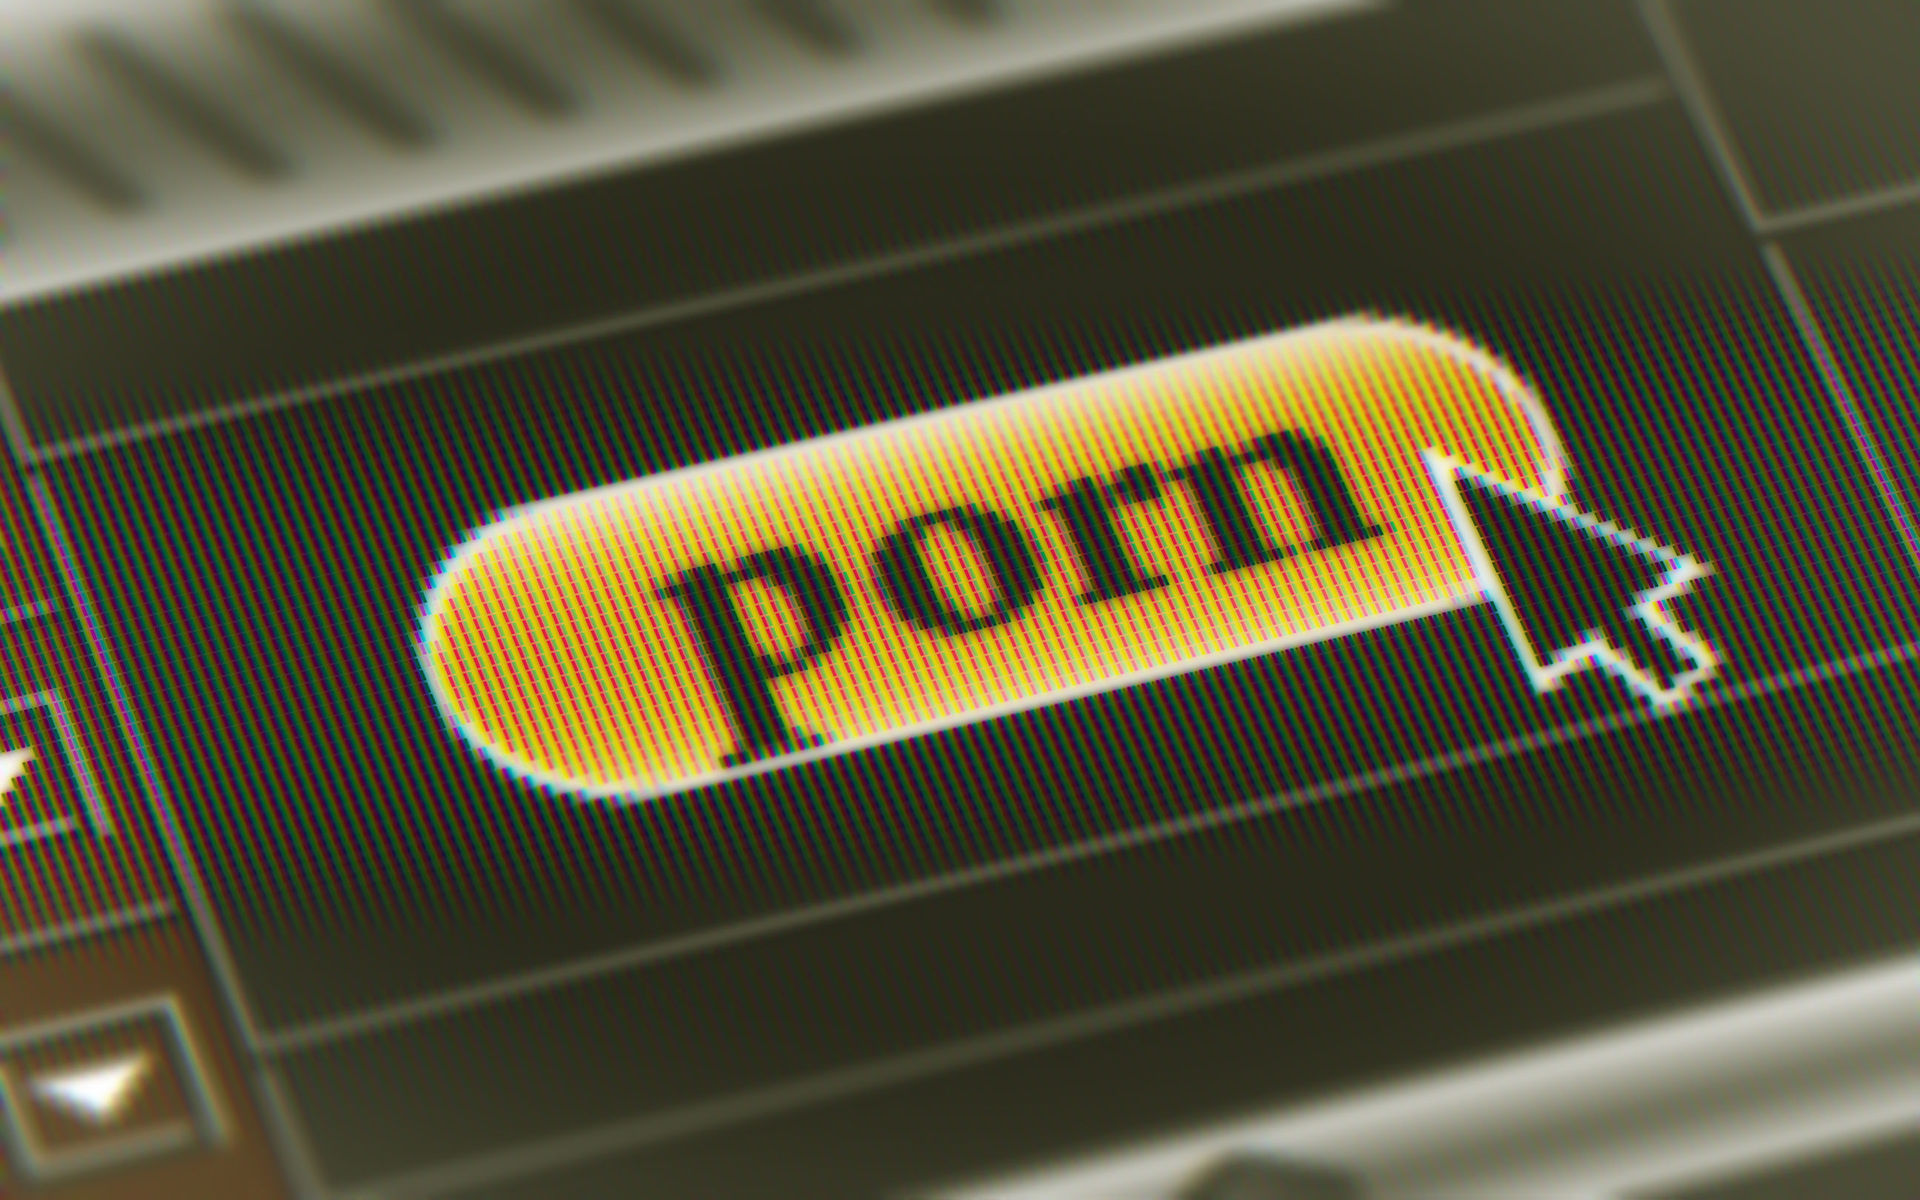 DOC staff attempt to access porn sites 148 times